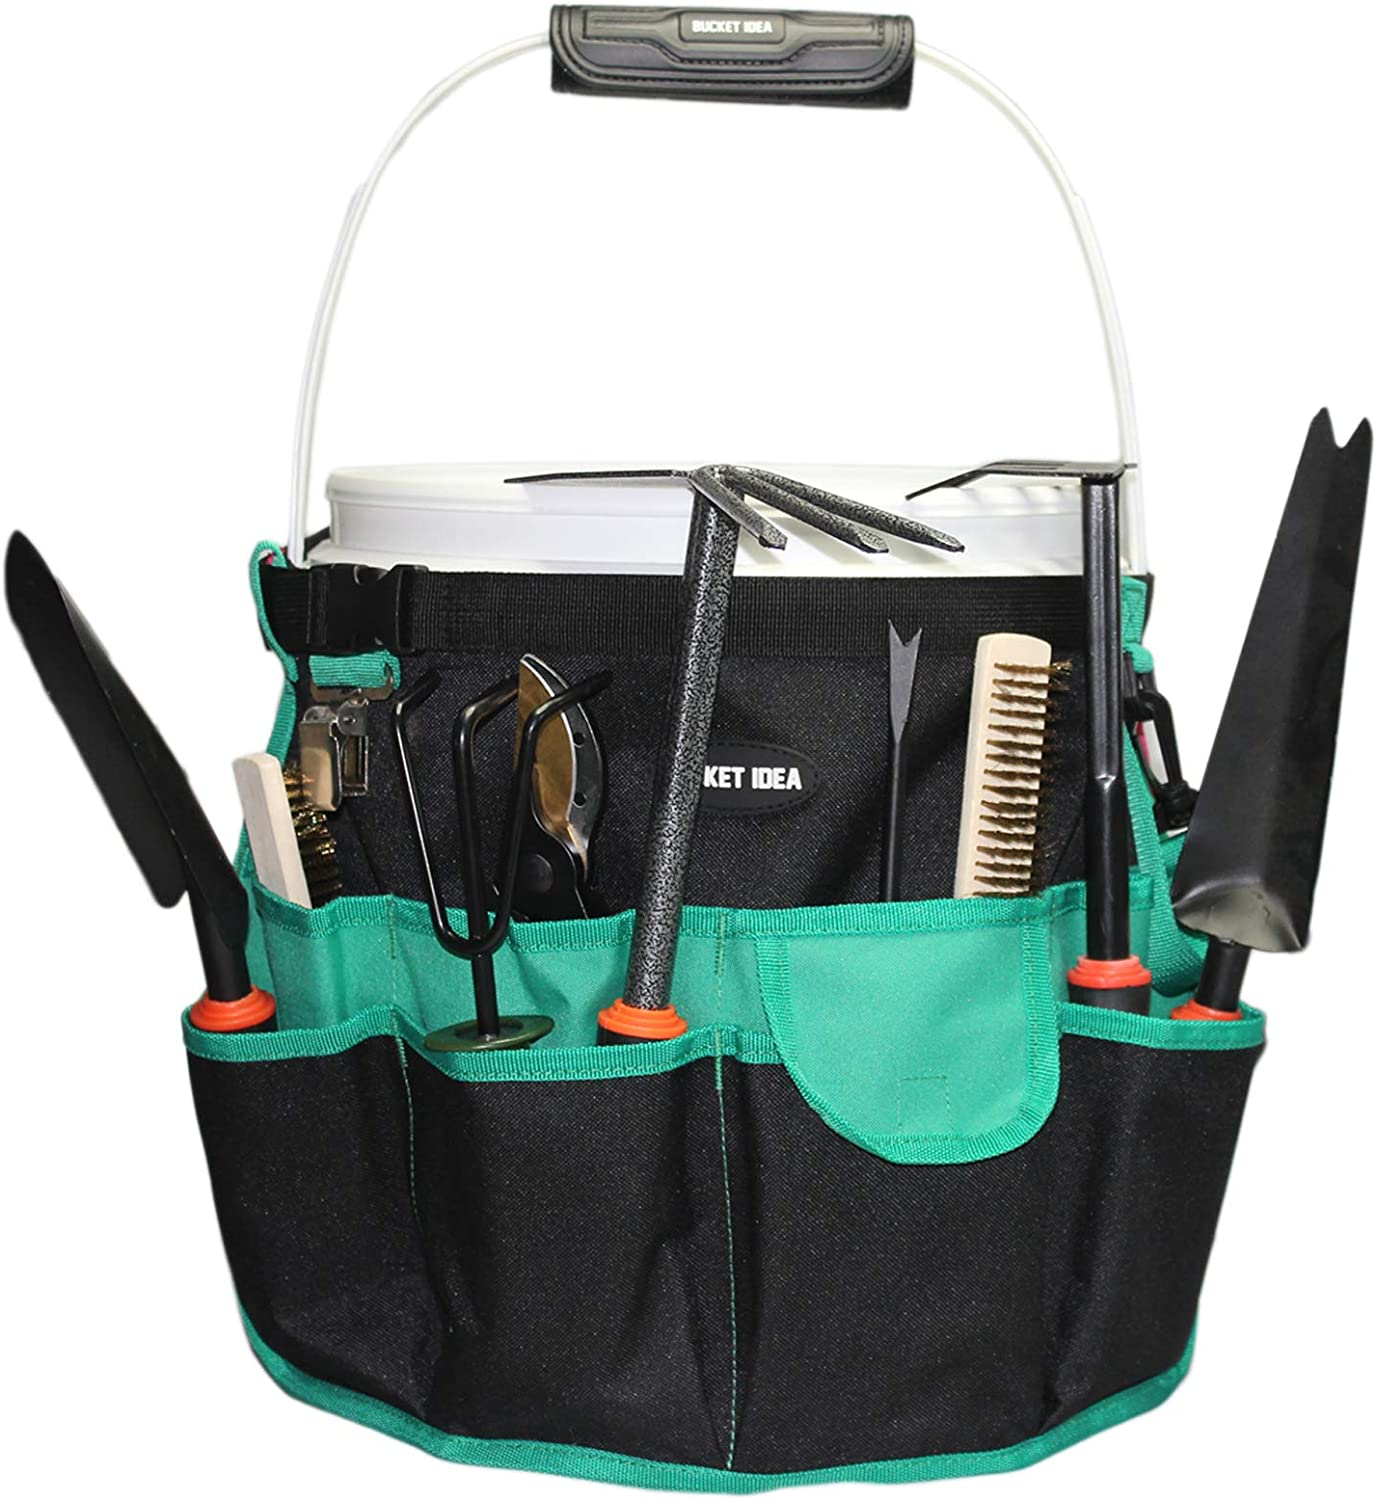 Bucket Idea Fixed price for sale Tool Organizer for Fort Worth Mall Garden 3.5 Tools Fit to 5